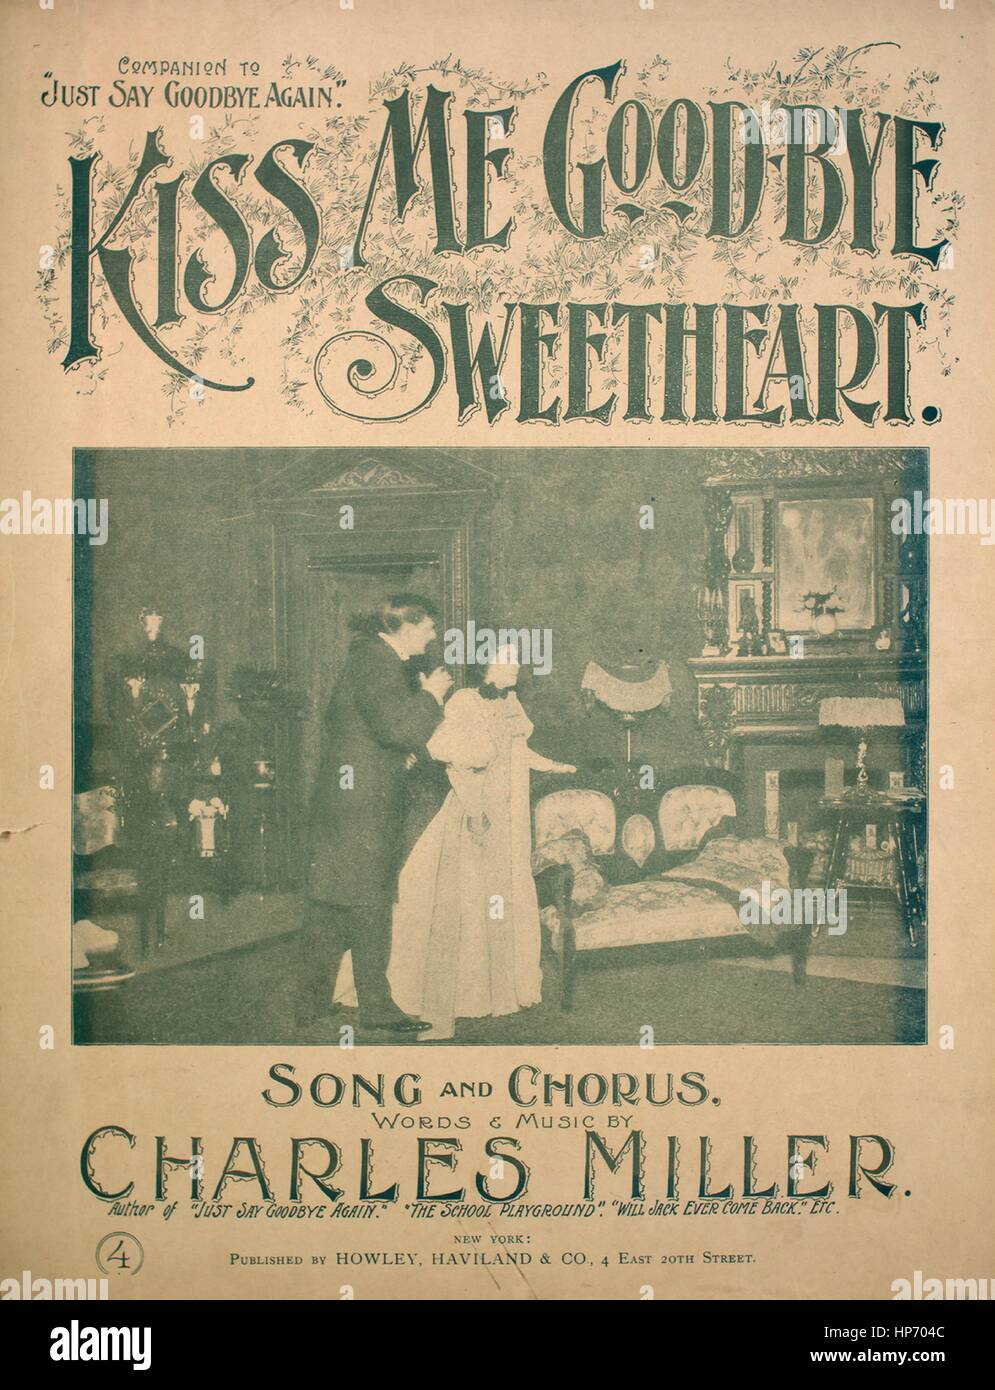 Sheet music cover image of the song 'Kiss Me Good-bye